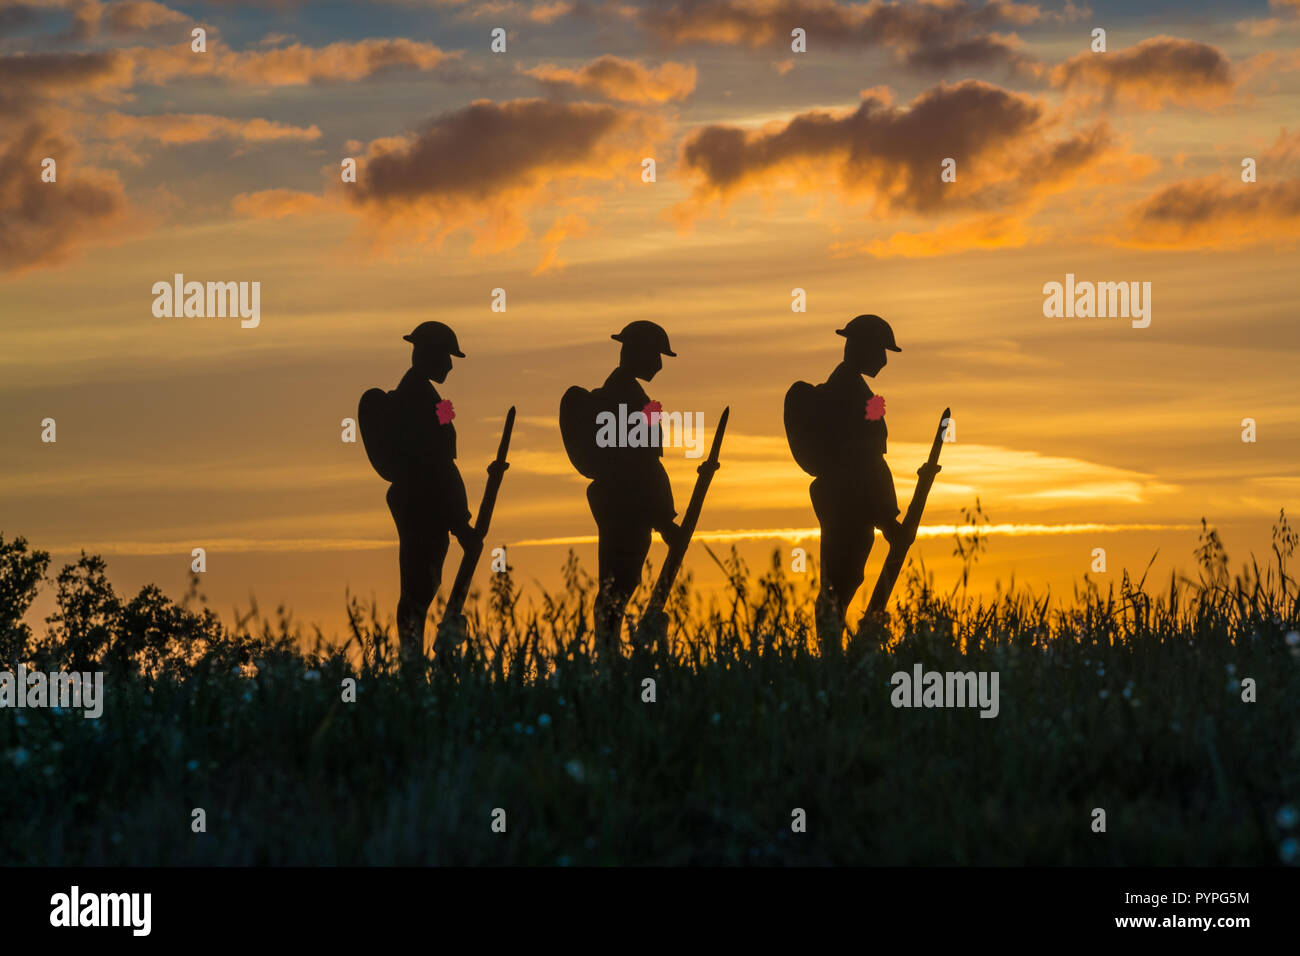 Lest we Forget - Remembrance Soldiers - Stock Image